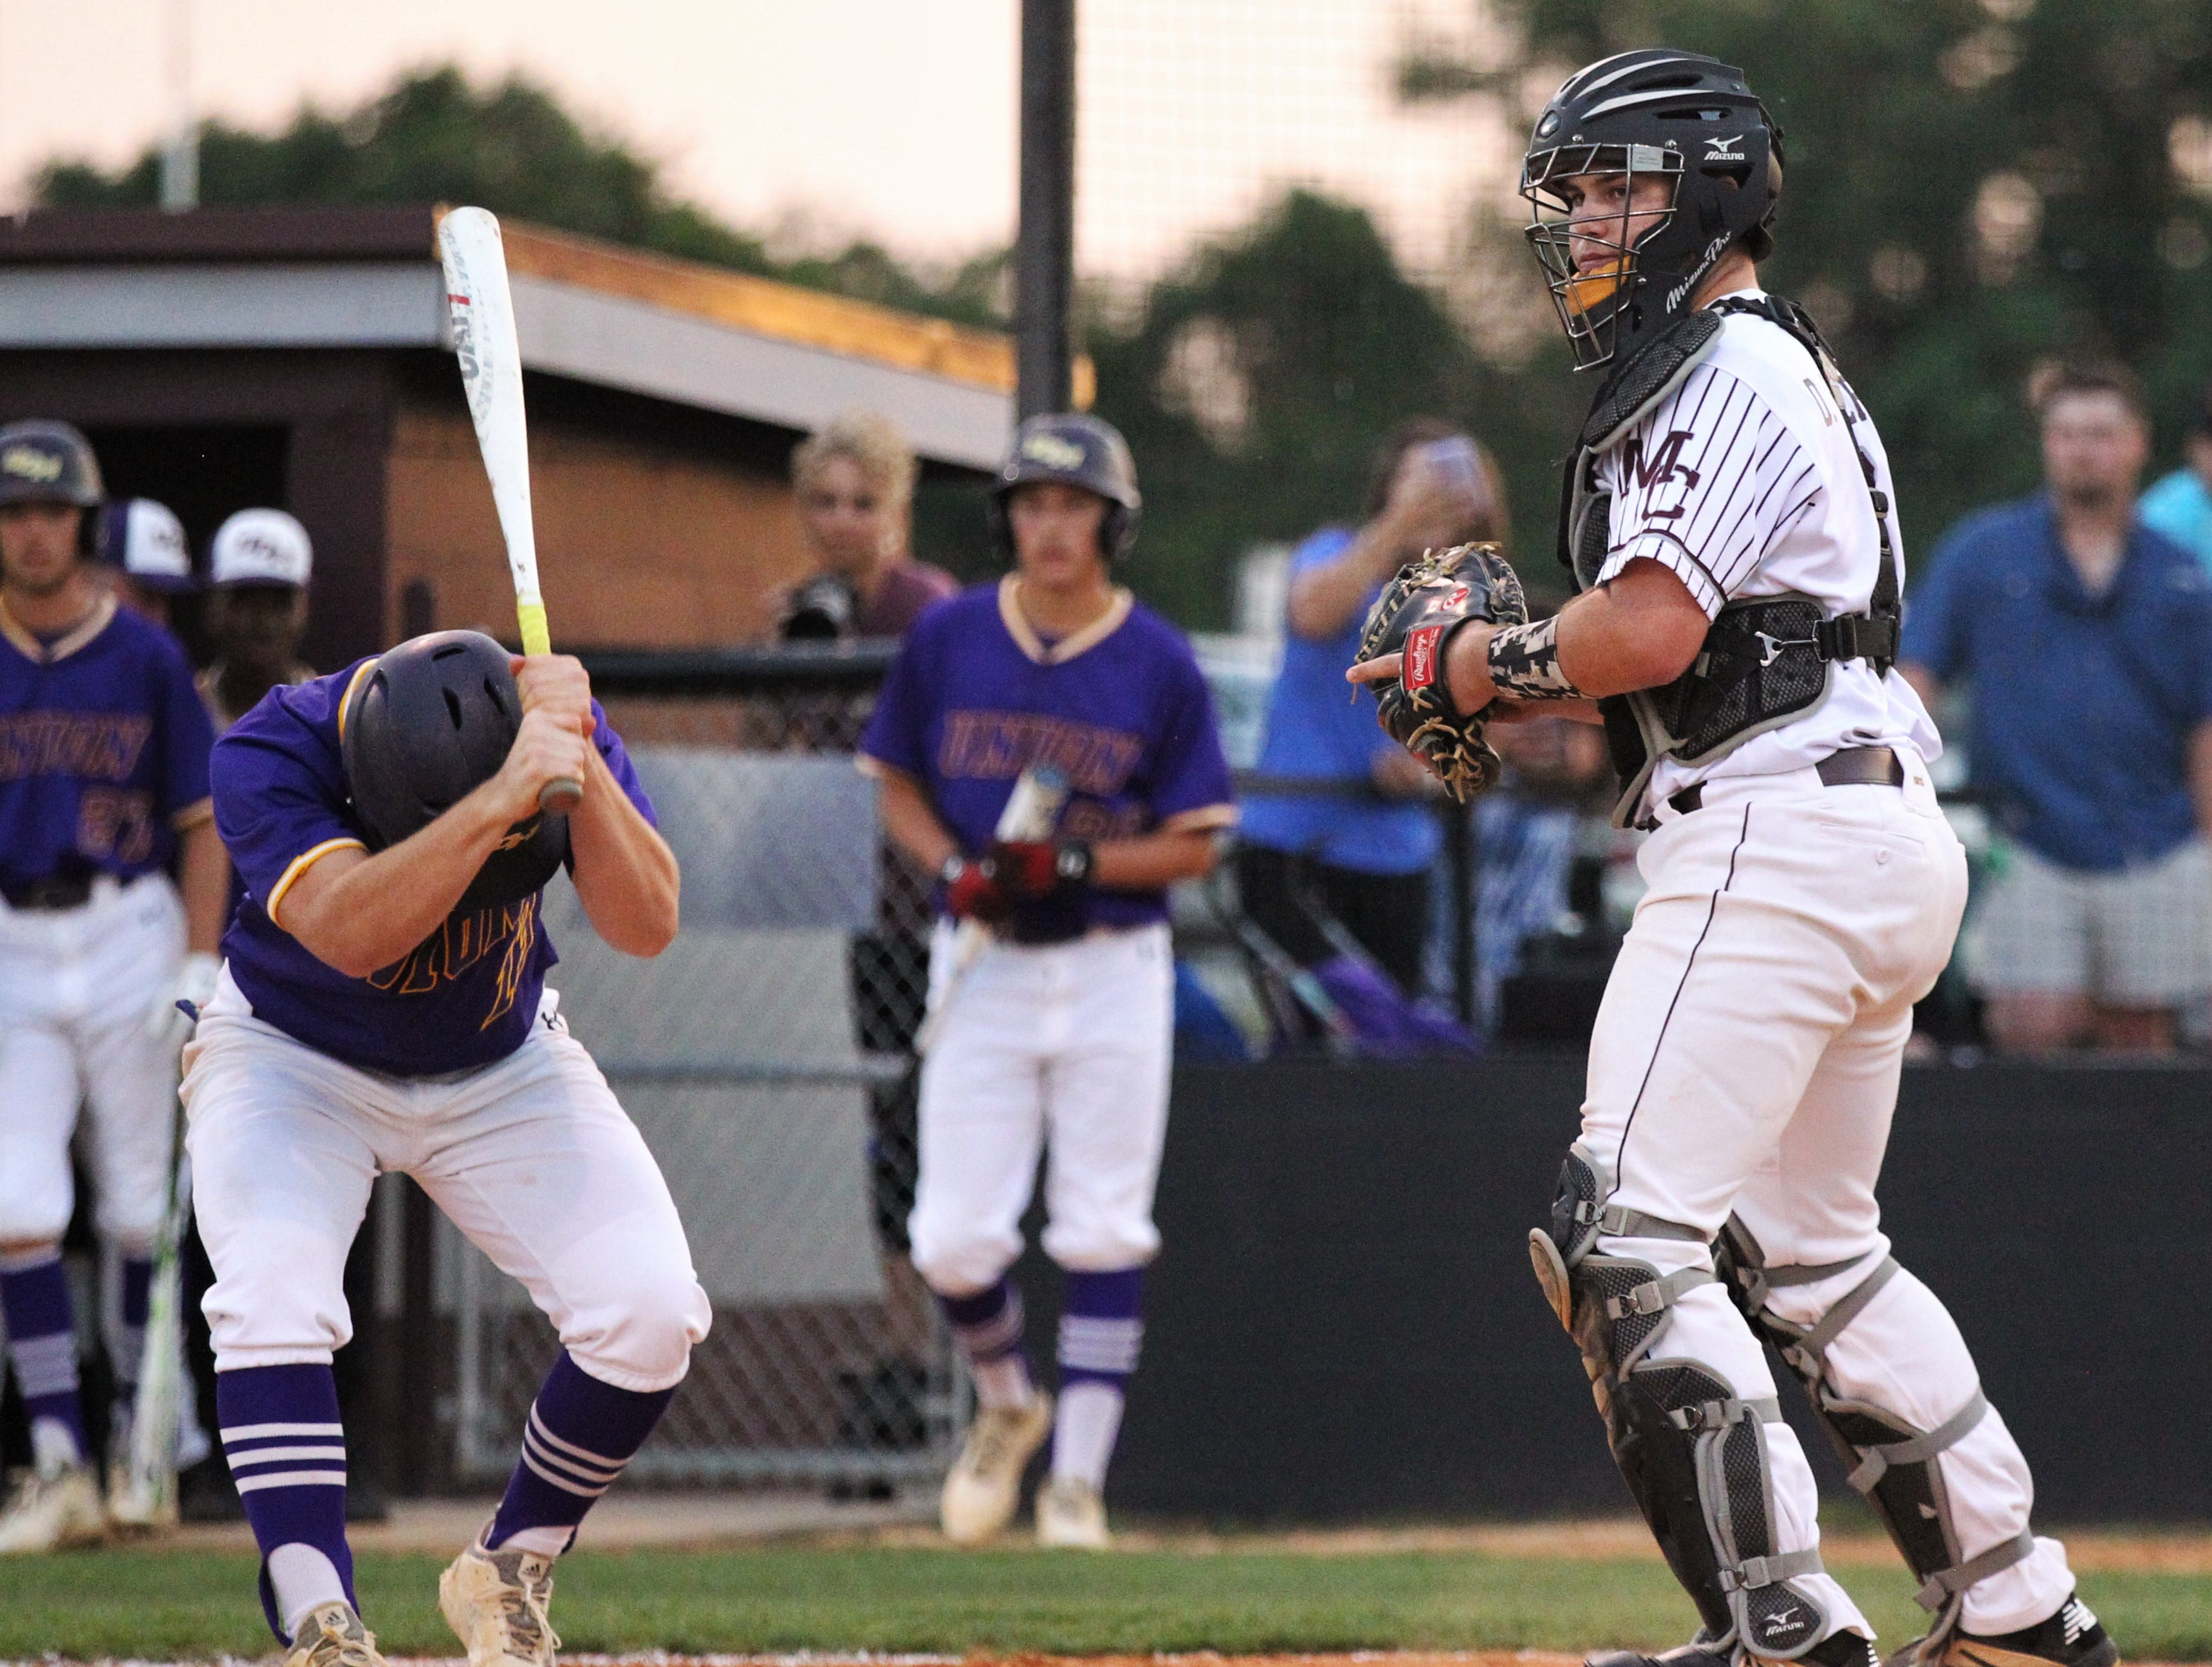 A Union County player reacts to striking out as Madison County beat Union County 1-0 during a Region 2-1A semifinal on May 14, 2019.